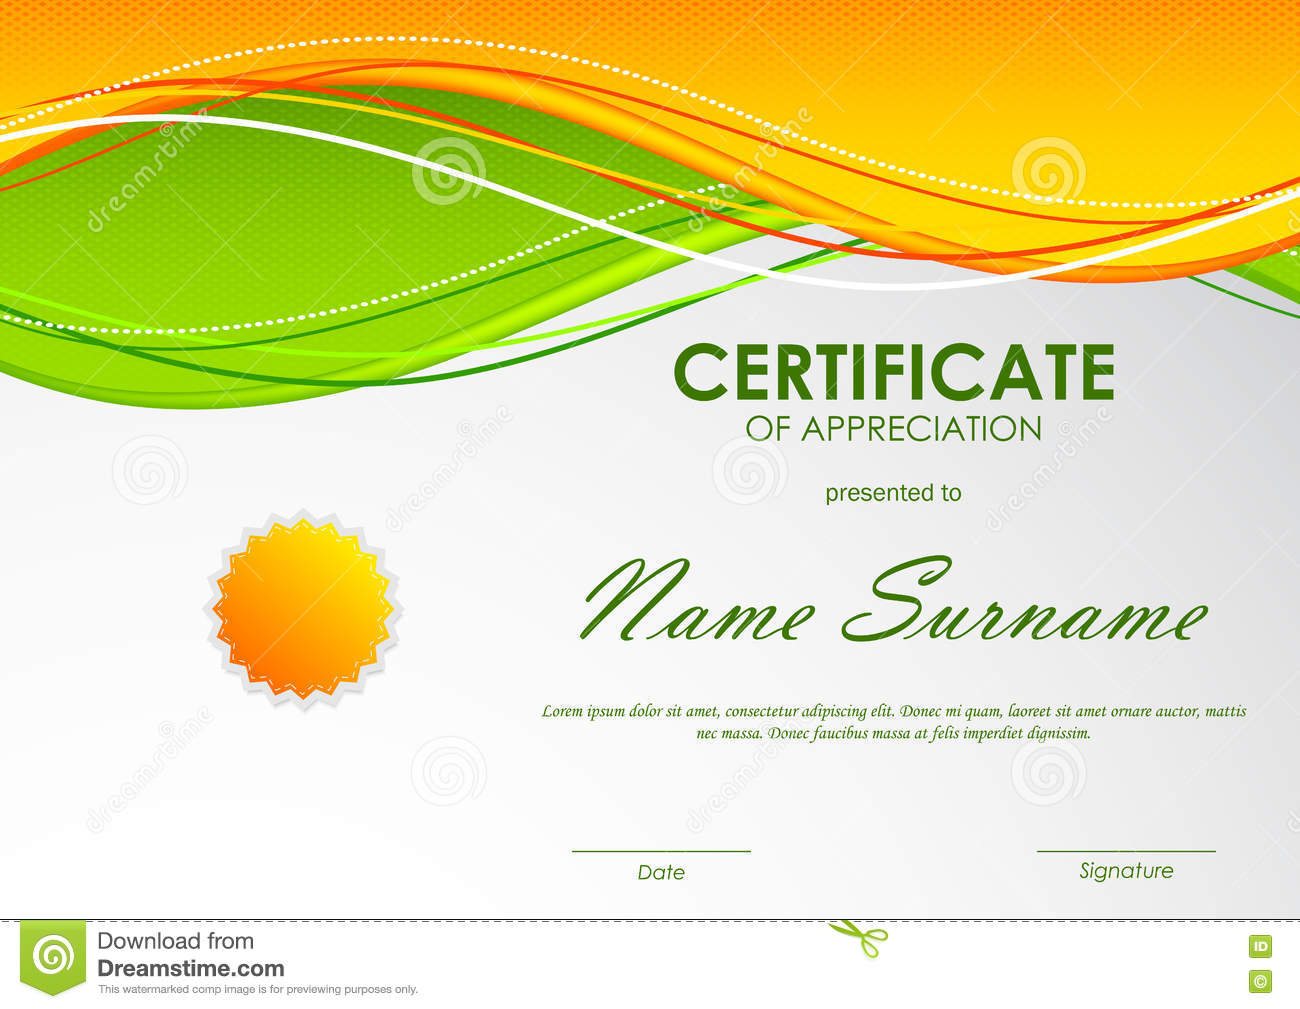 Printable certificate appreciation template nature theme green certificate of appreciation template free choice image templates certificate appreciation template orange wavy background seal vector yelopaper